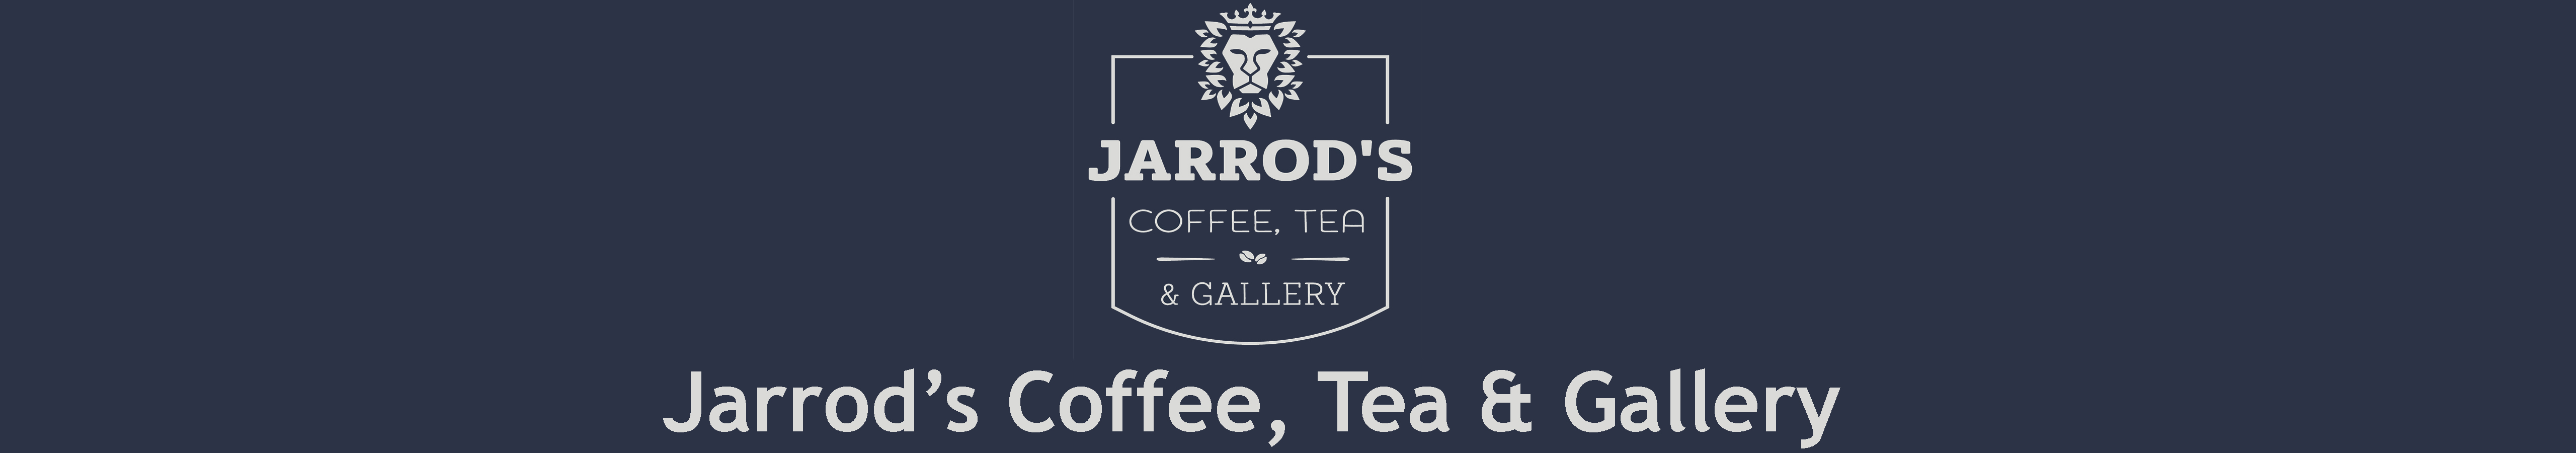 Jarrod's Coffee, Tea and Gallery | Local Events Mesa